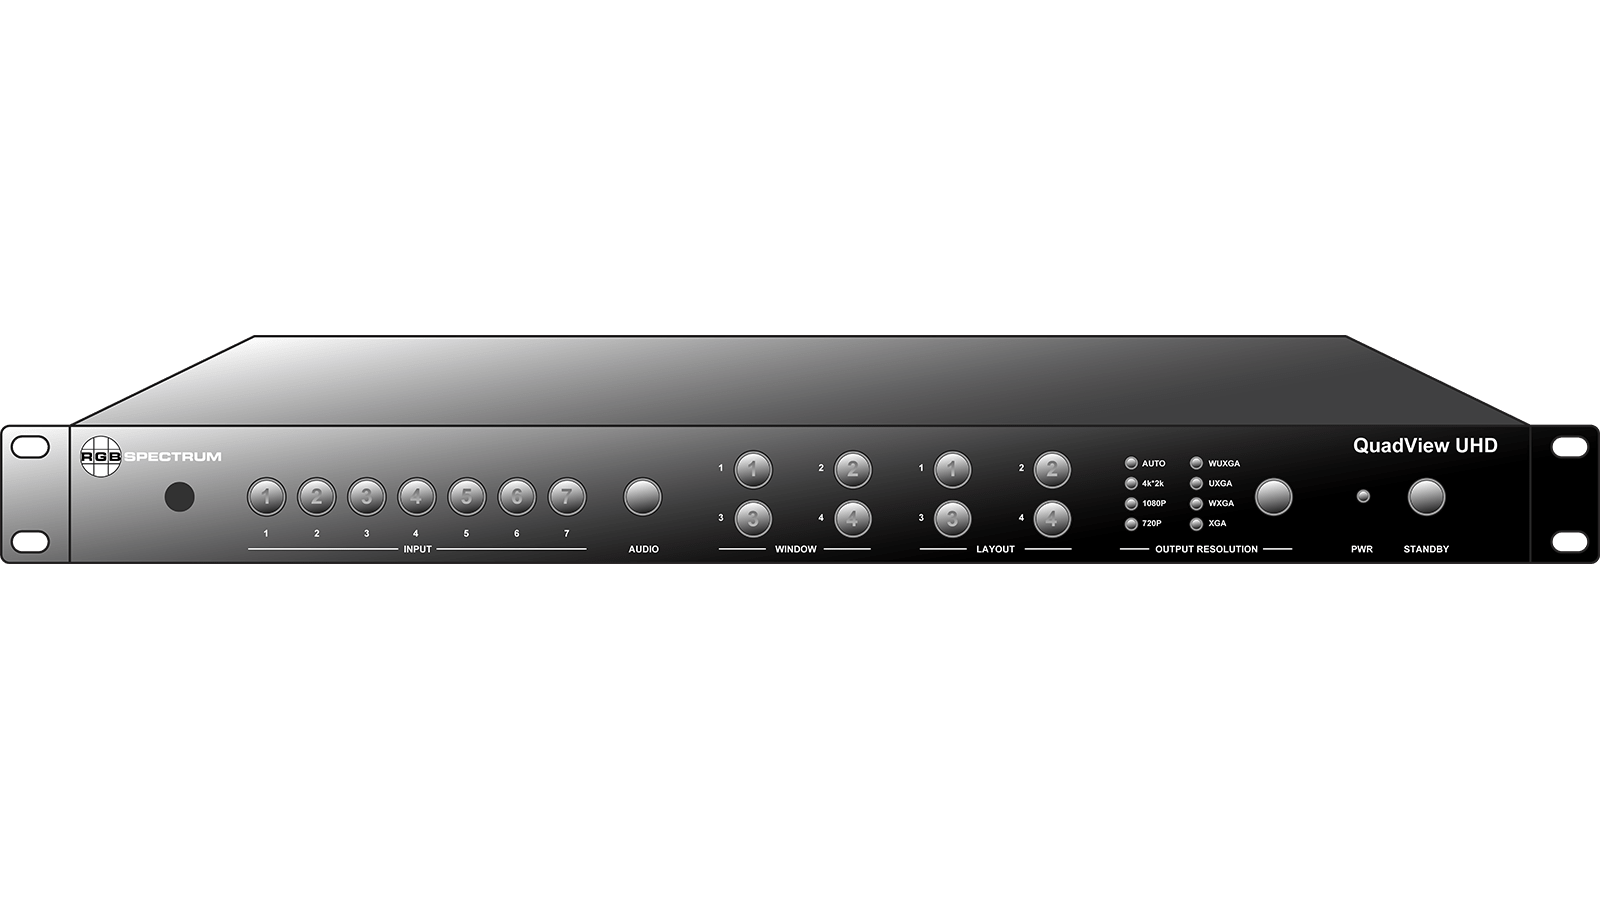 QuadView UHD front panel